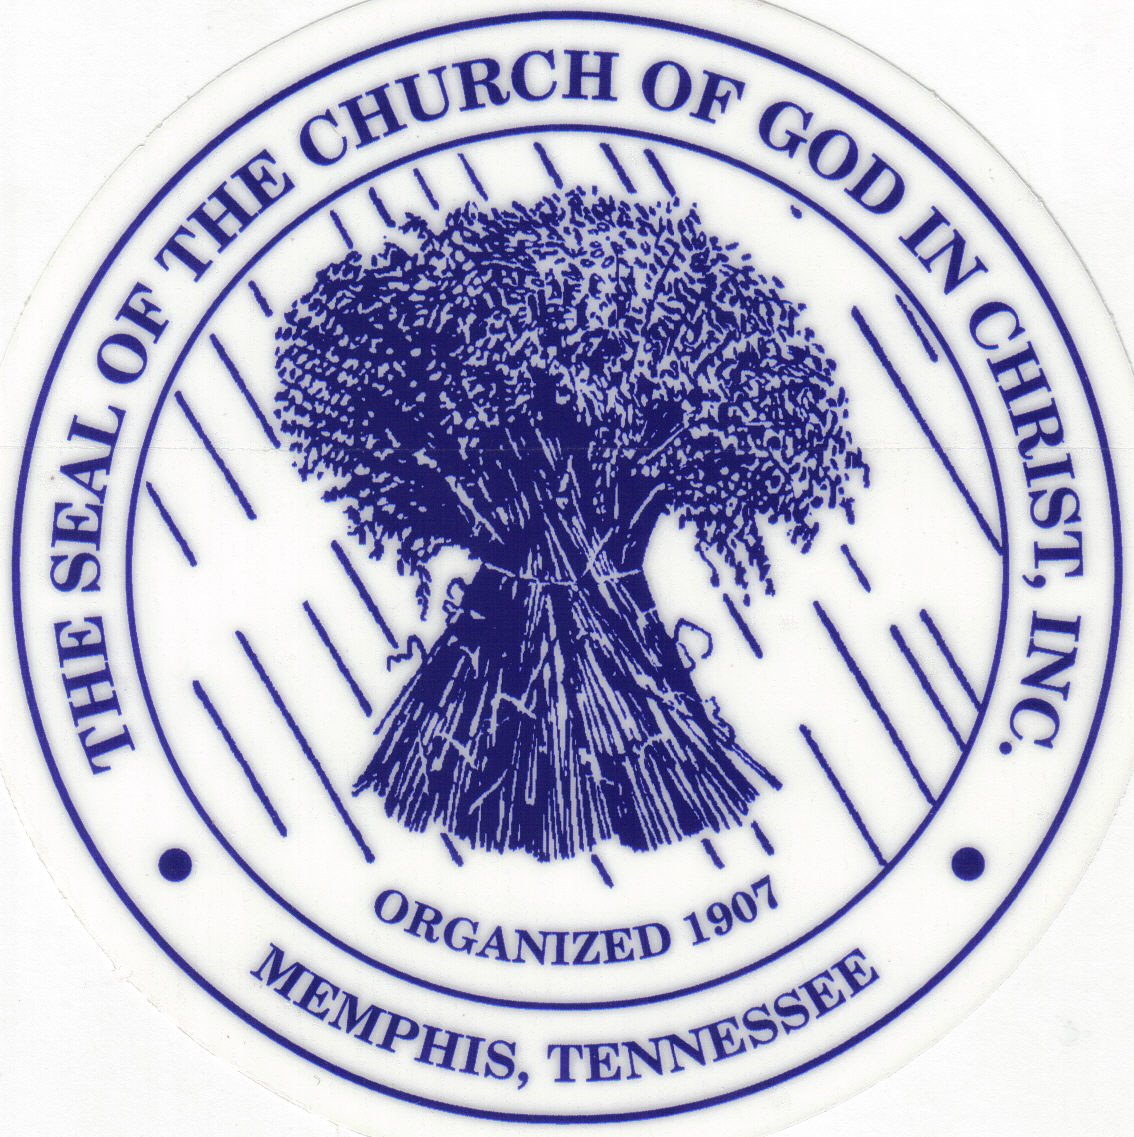 Church of God in Christ Bishop Seal http://bethelburnett.blogspot.com/2009/11/cogic-issues-102nd-annual-holy.html